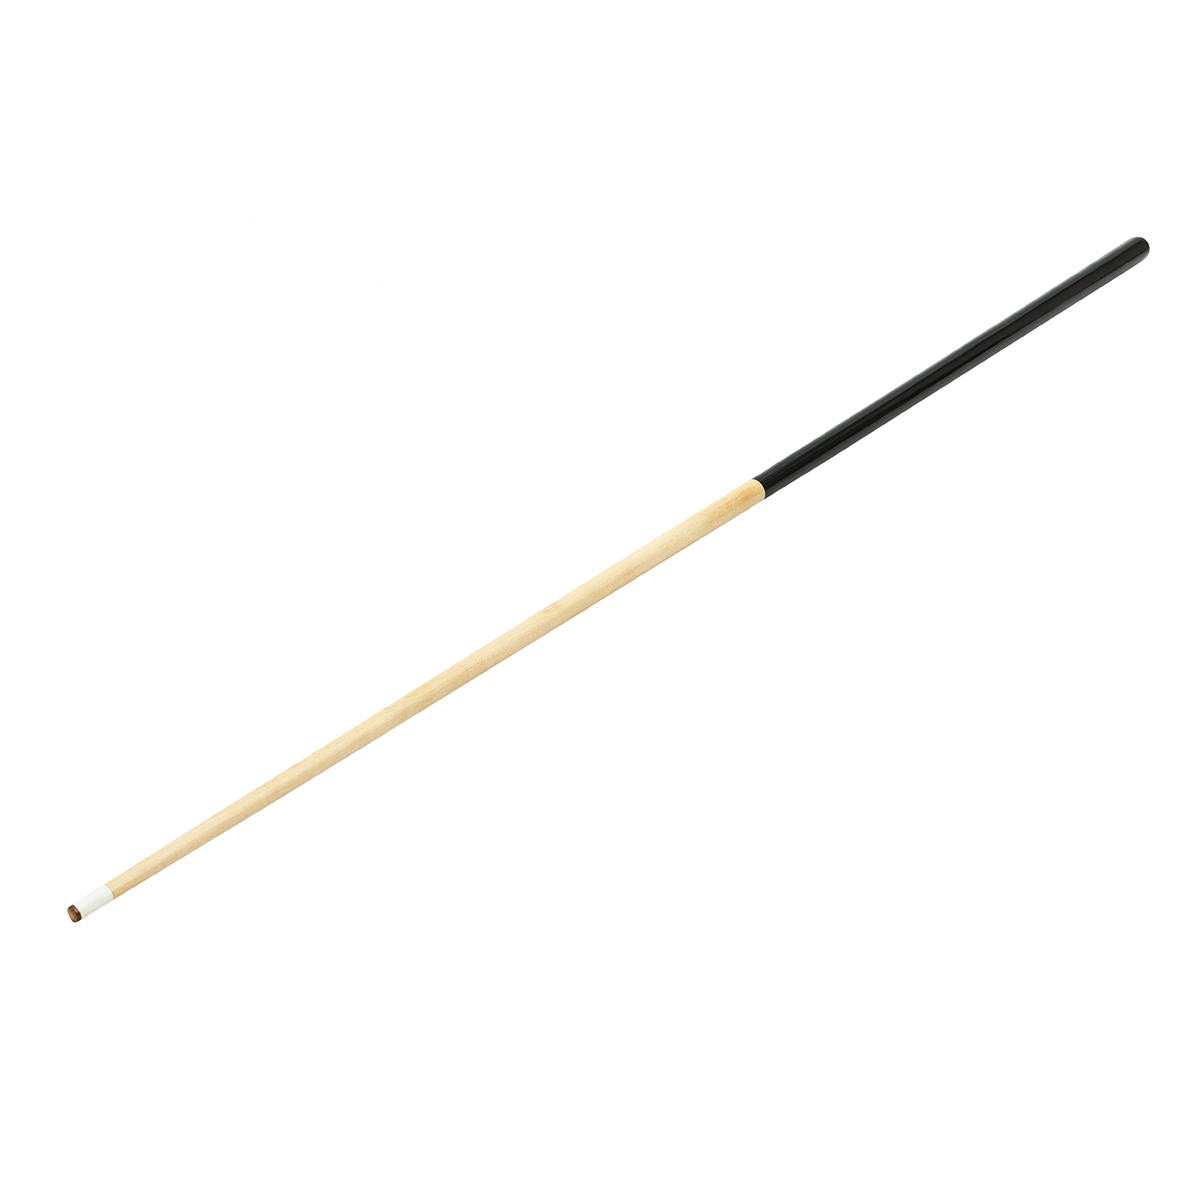 2-Piece  57/145cm Snooker Cues Wood Jointed Cue Stick Snooker Billiards Pool With Chalk 1/2 Design Entertainment Accessories2-Piece  57/145cm Snooker Cues Wood Jointed Cue Stick Snooker Billiards Pool With Chalk 1/2 Design Entertainment Accessories